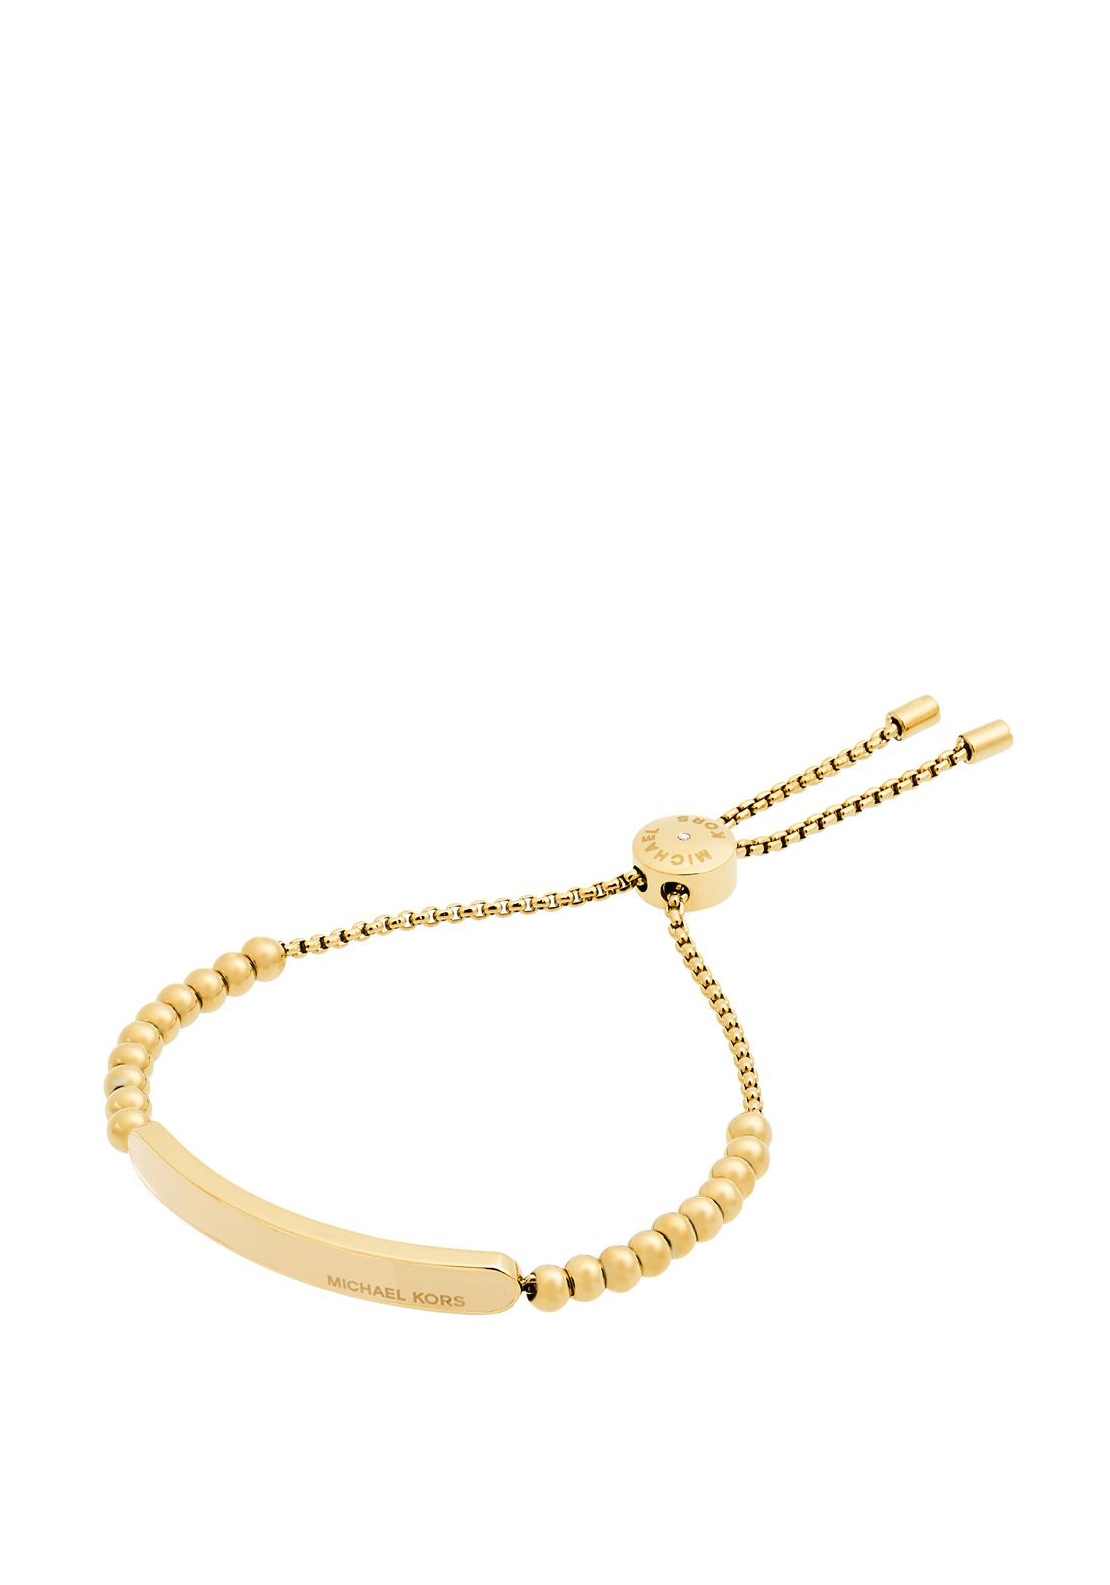 Michael Kors Logo Plague Beaded Toggle Bracelet, Gold